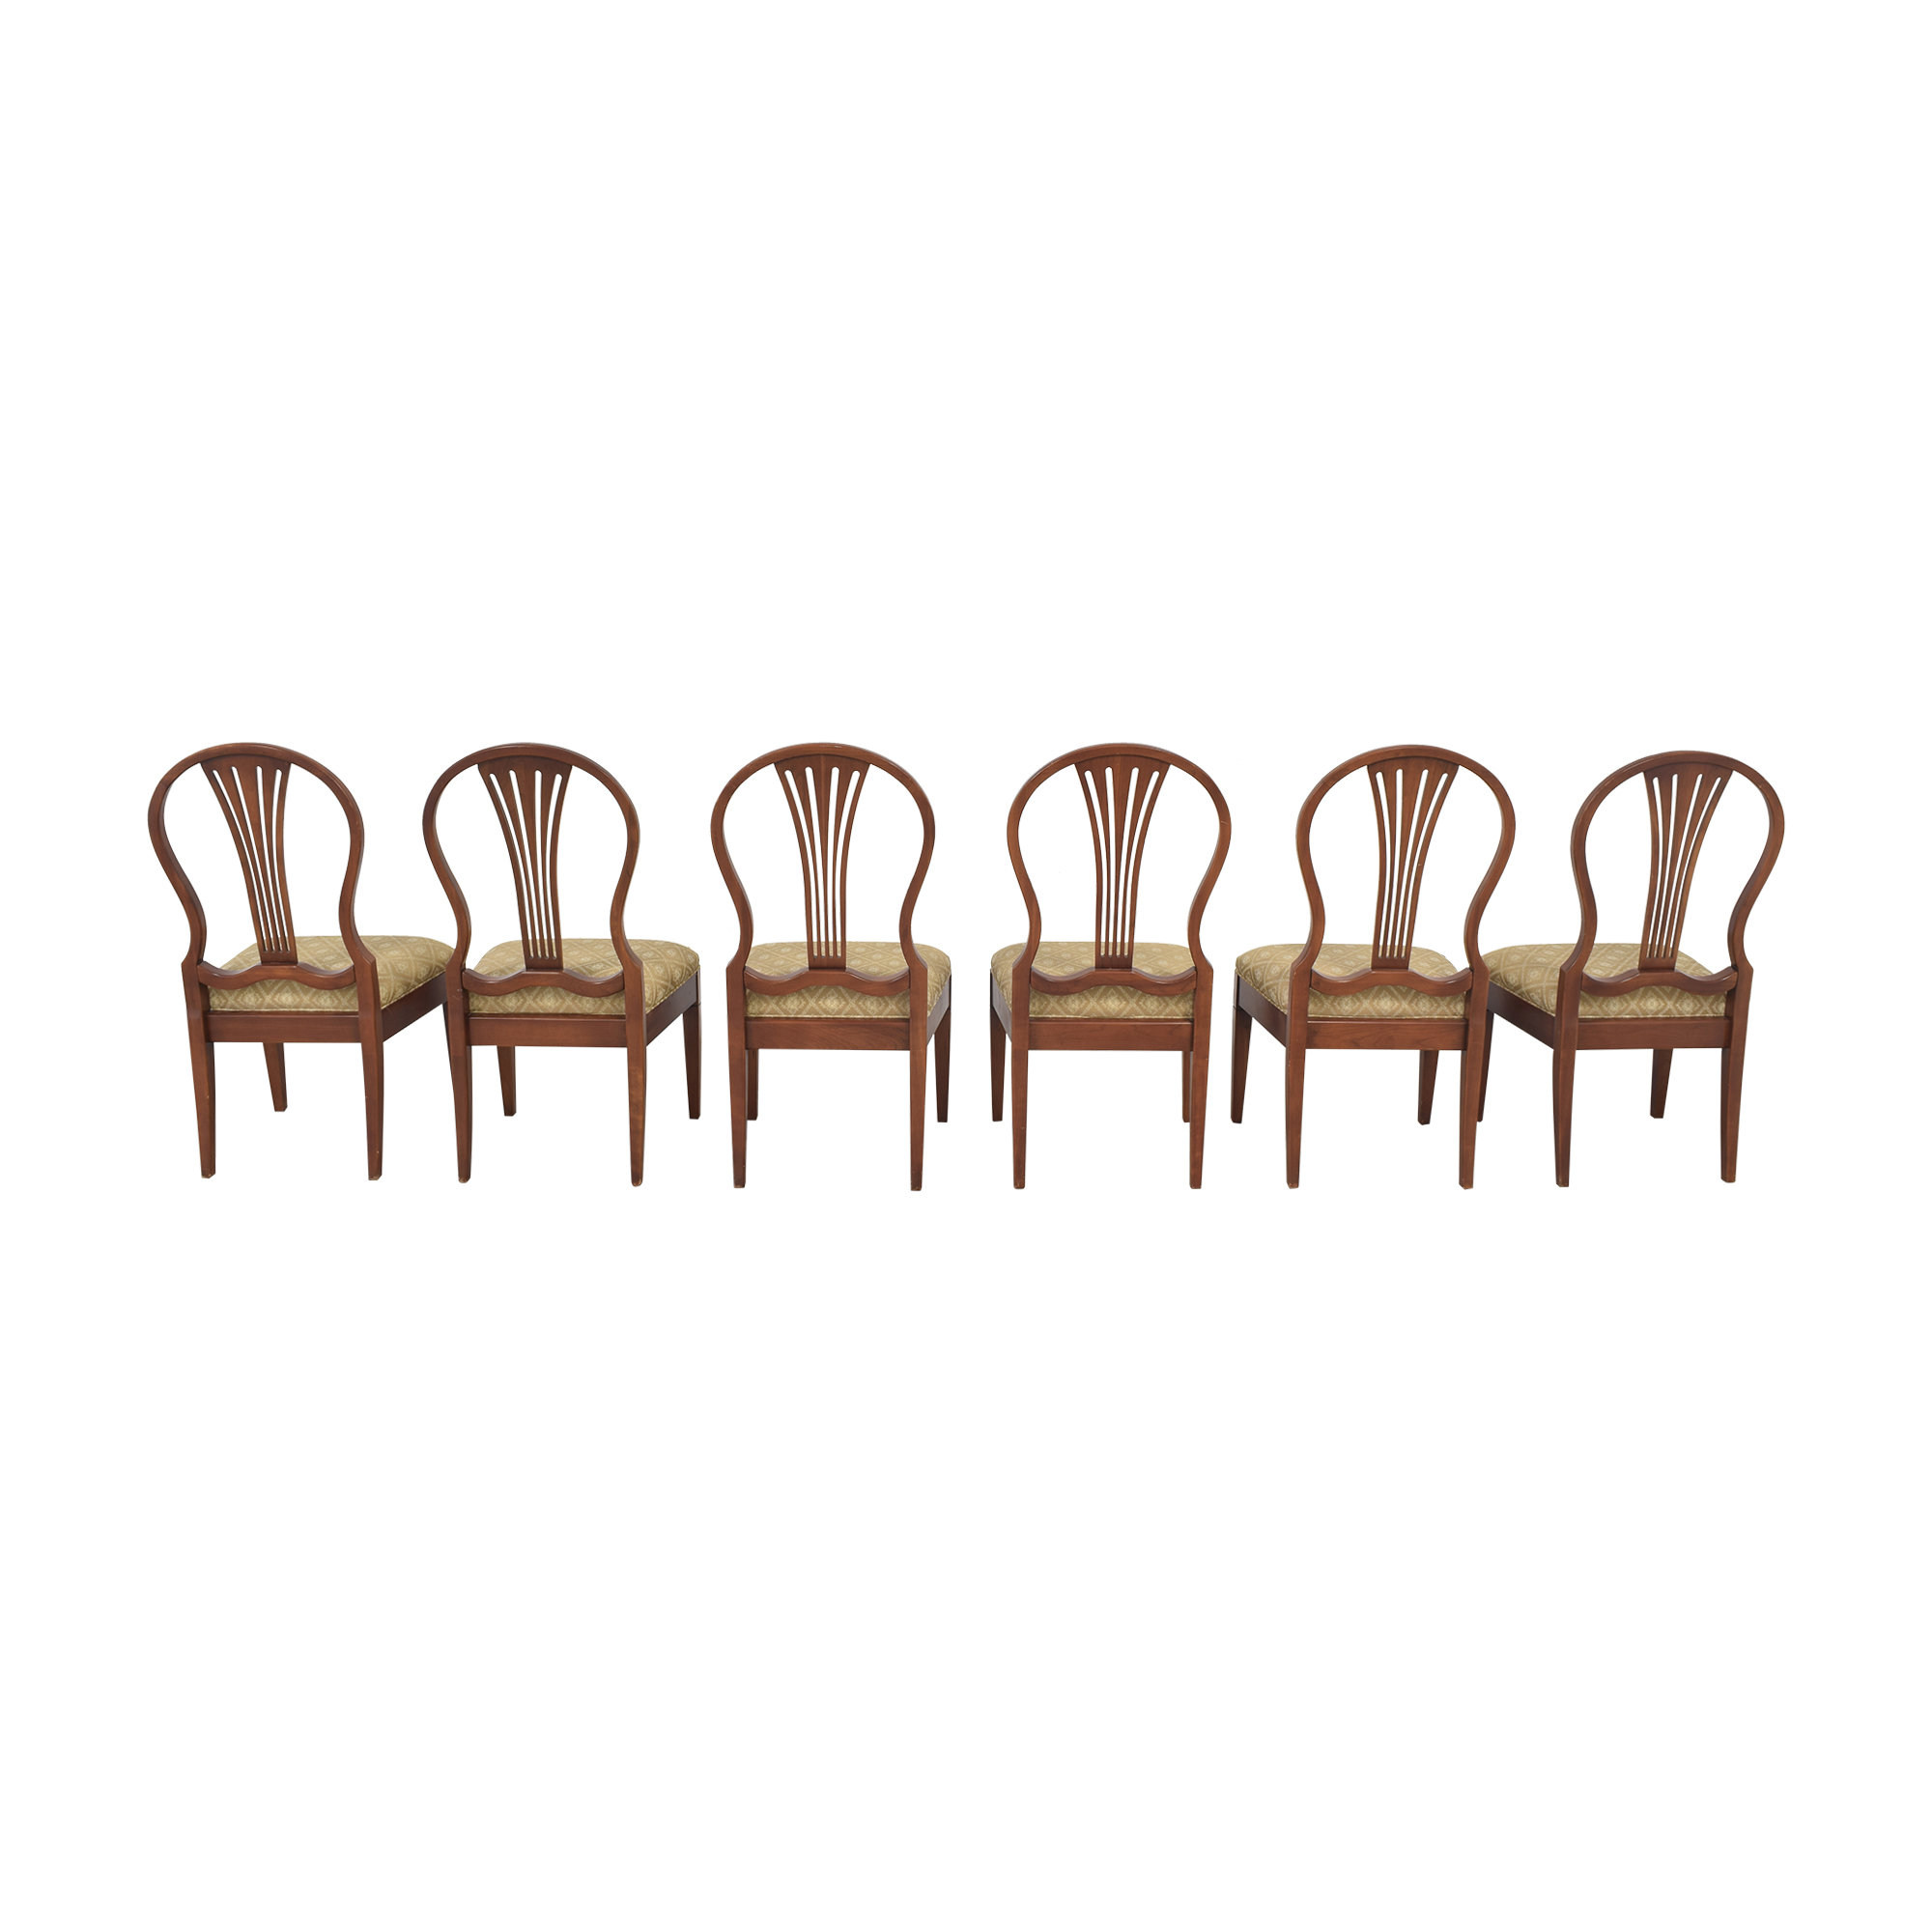 buy Harden Upholstered Dining Chairs Harden